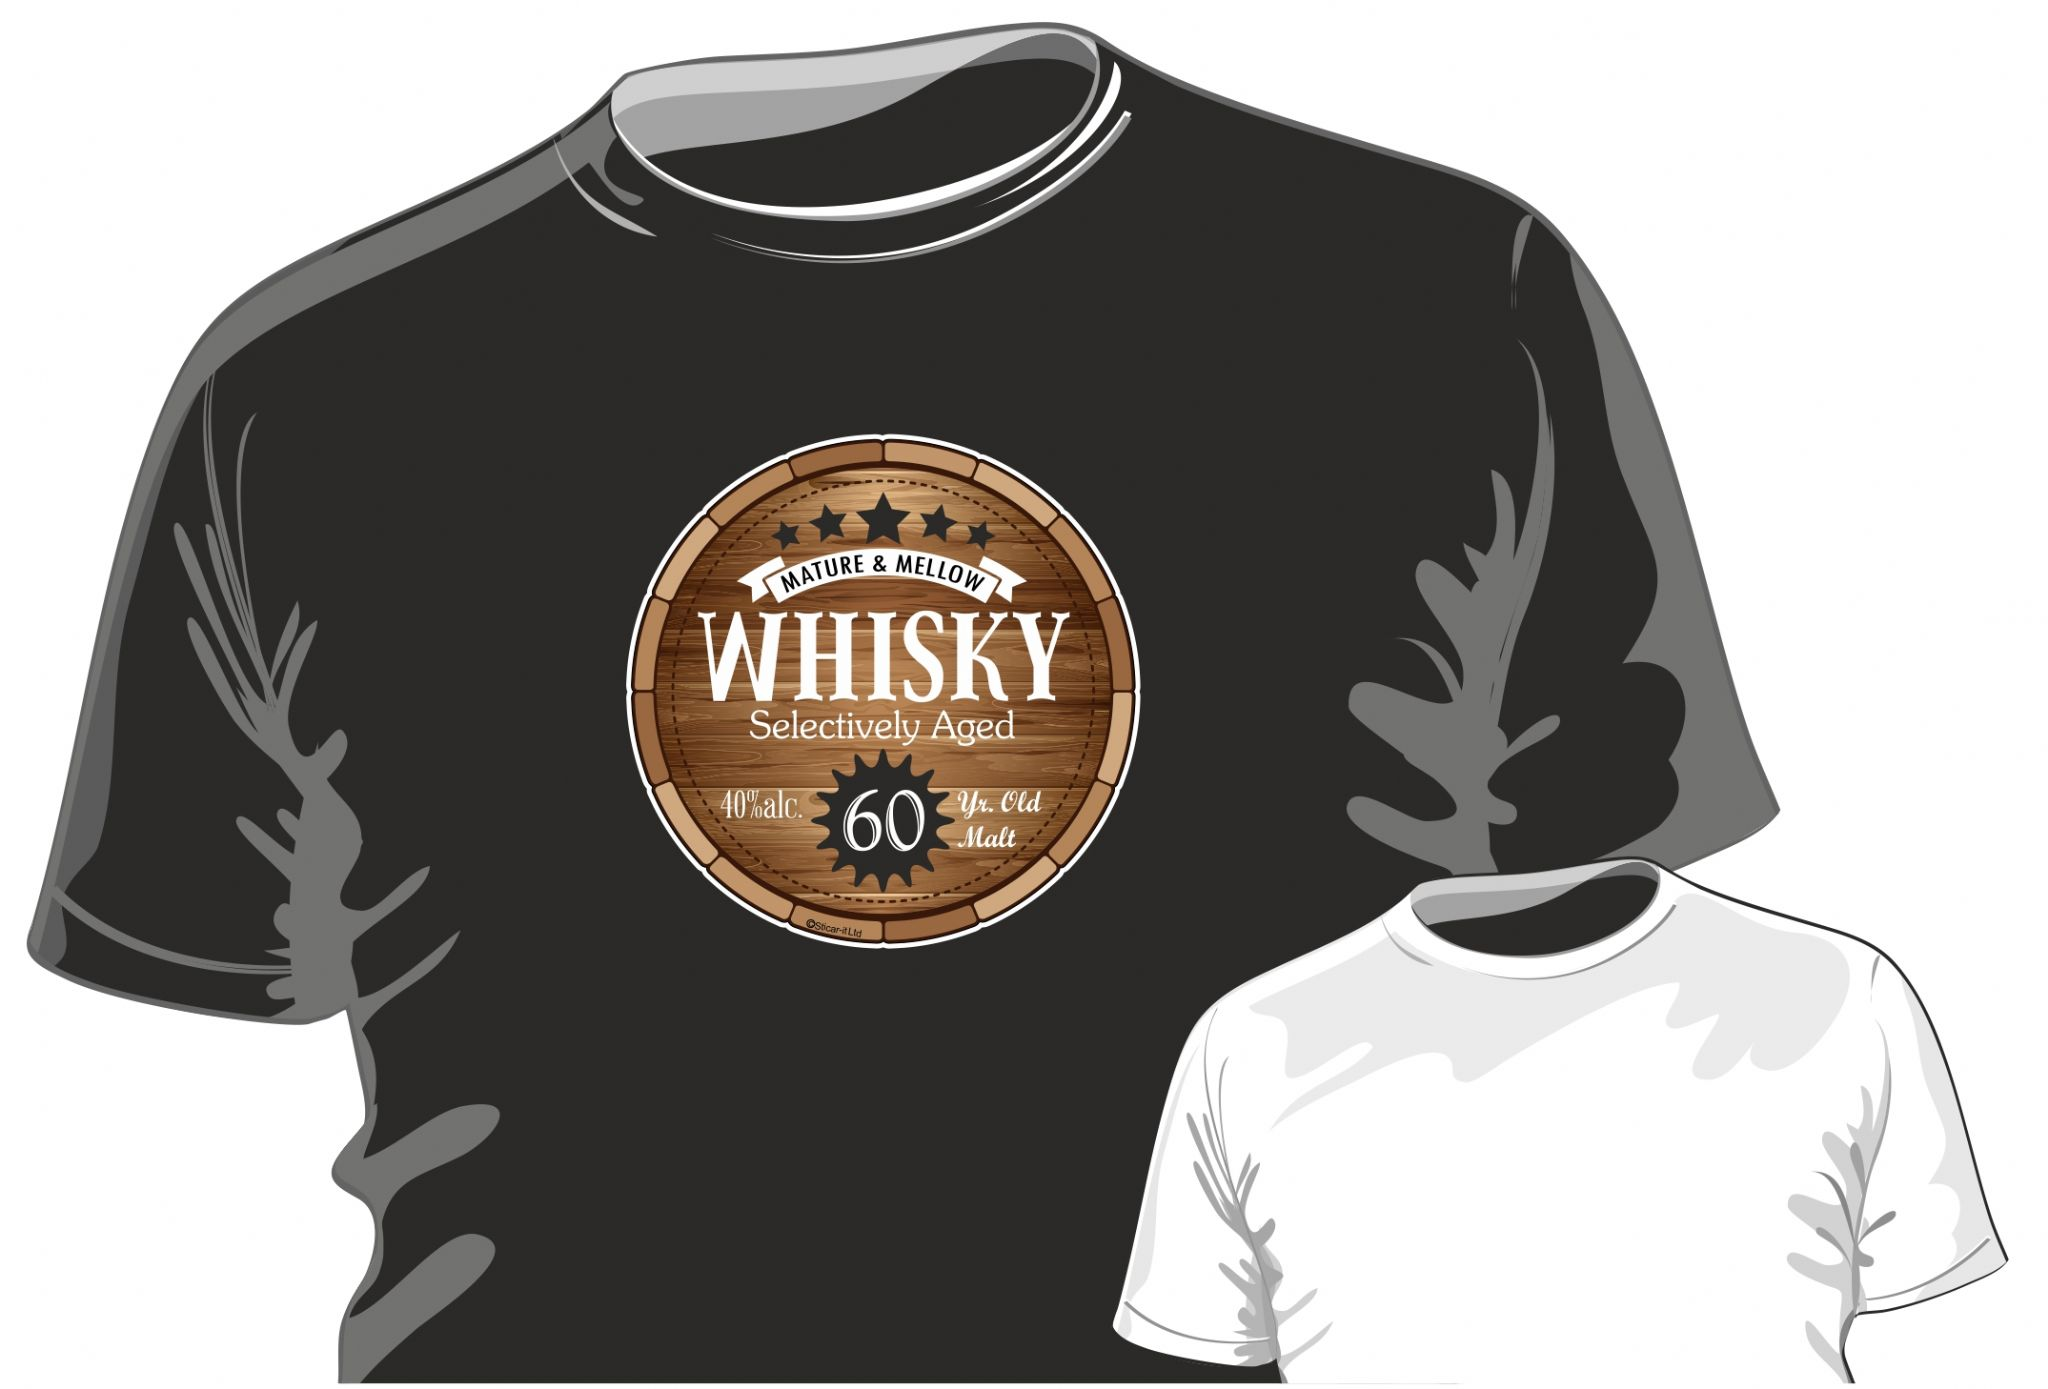 Funny 60 Year Old Malt Whisky Barrel Motif For 60th Birthday Occasion Anniversary Gift Mens Or Ladyfit T Shirt 15307 P